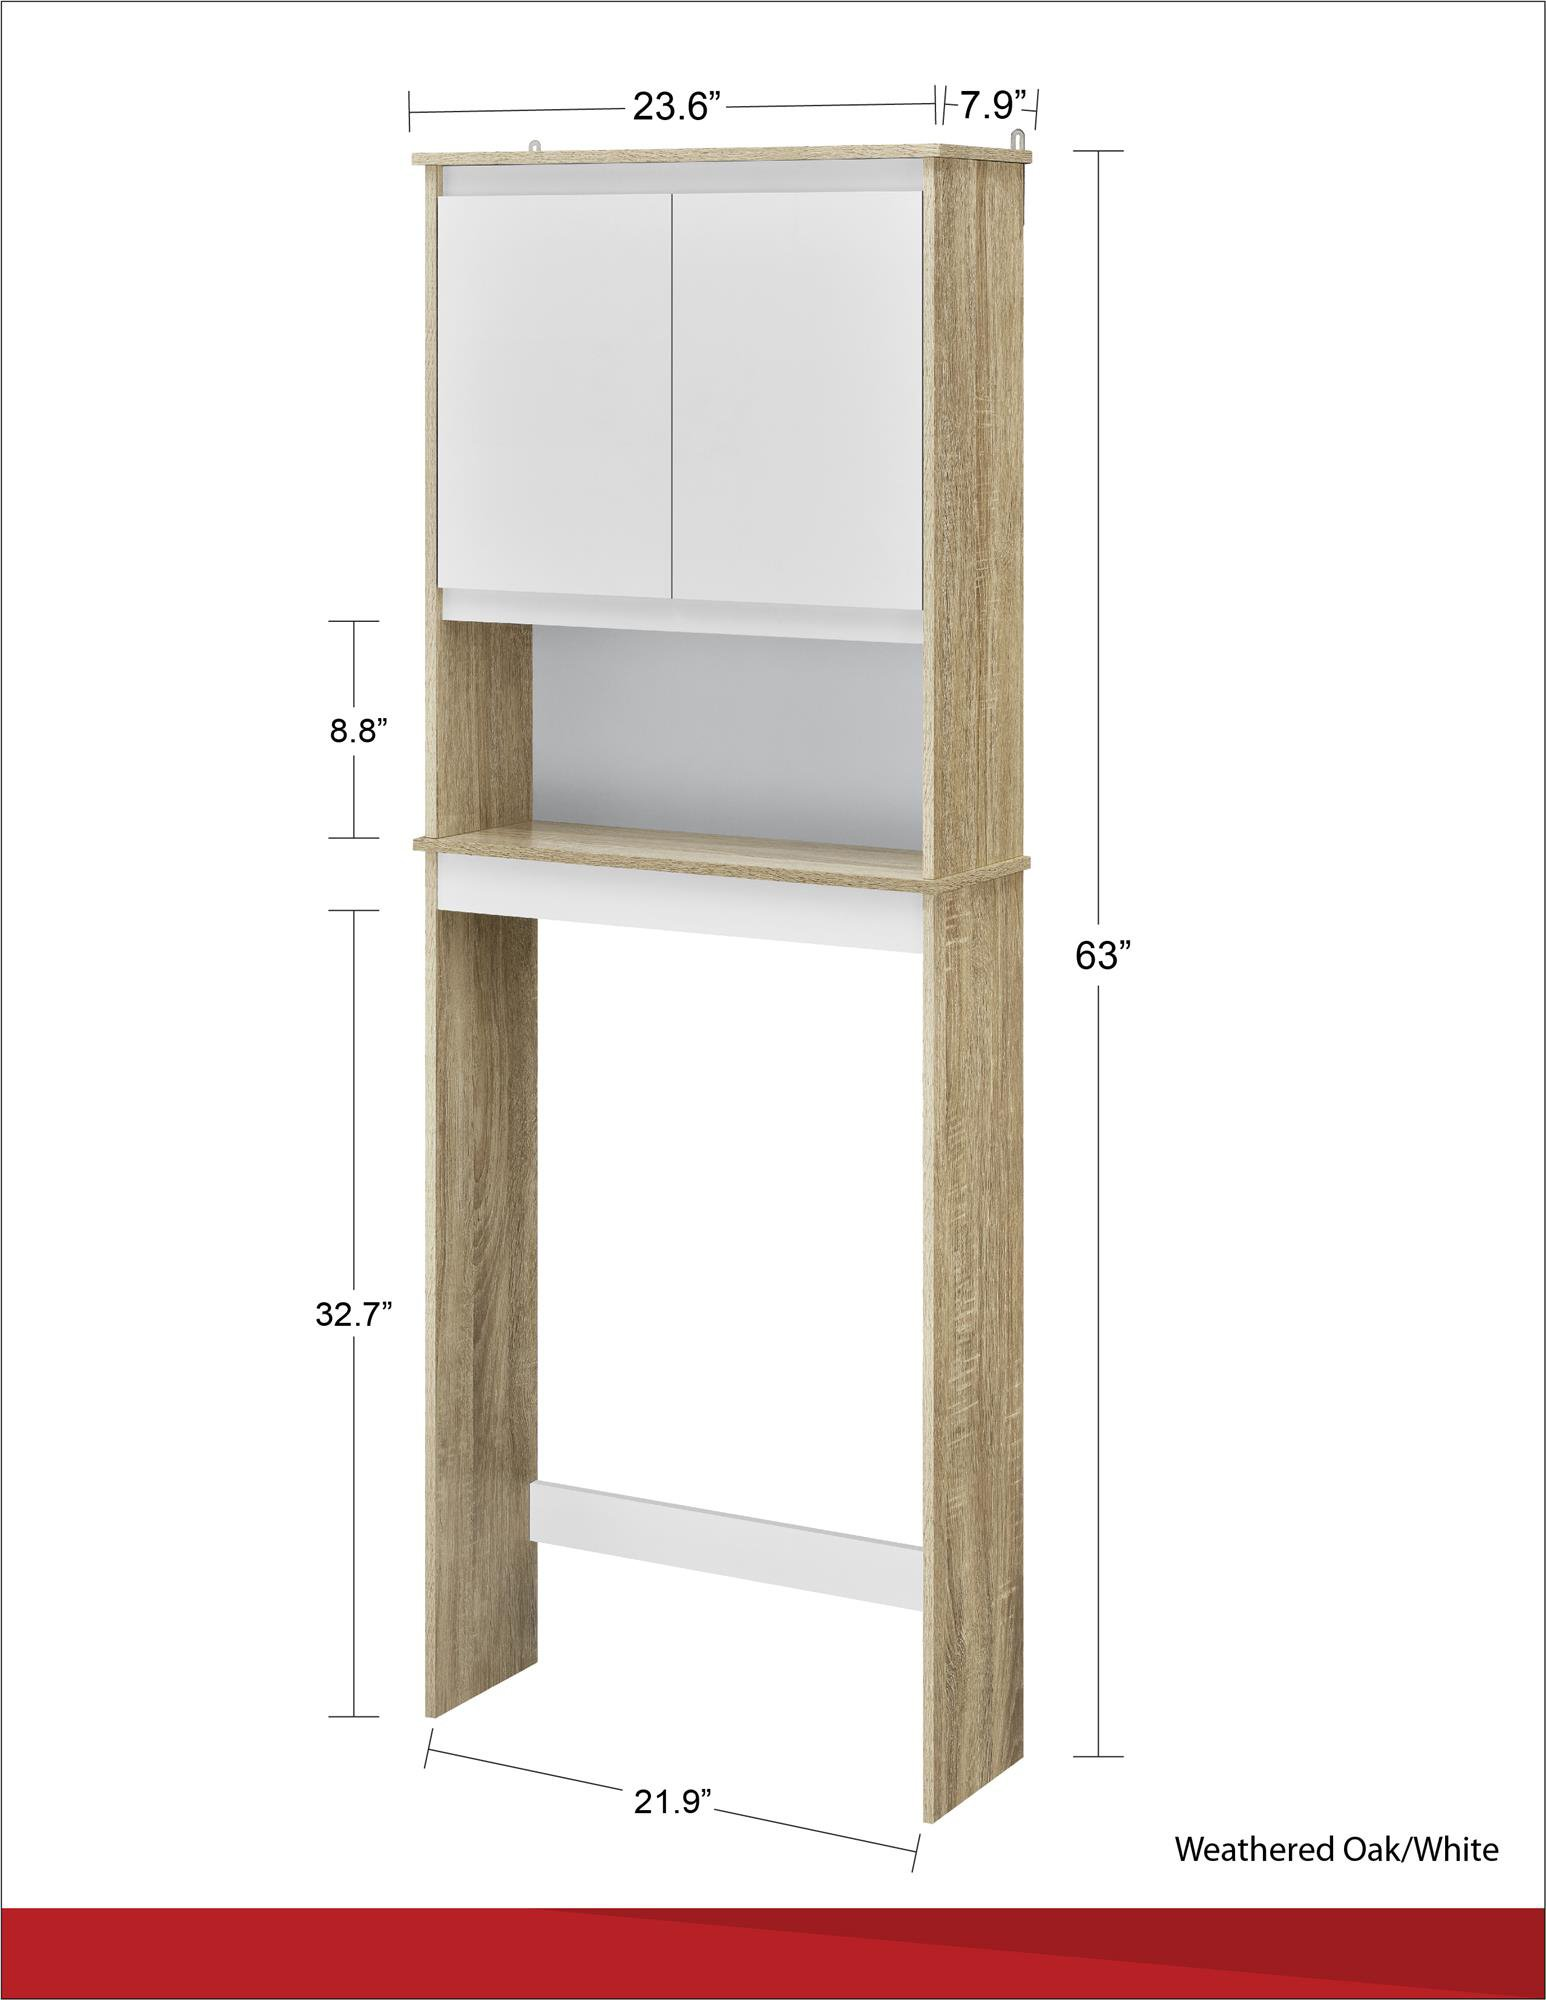 Ameriwood Home Stafford Storage Cabinet Weathered Oak by Ameriwood Home (Image #11)